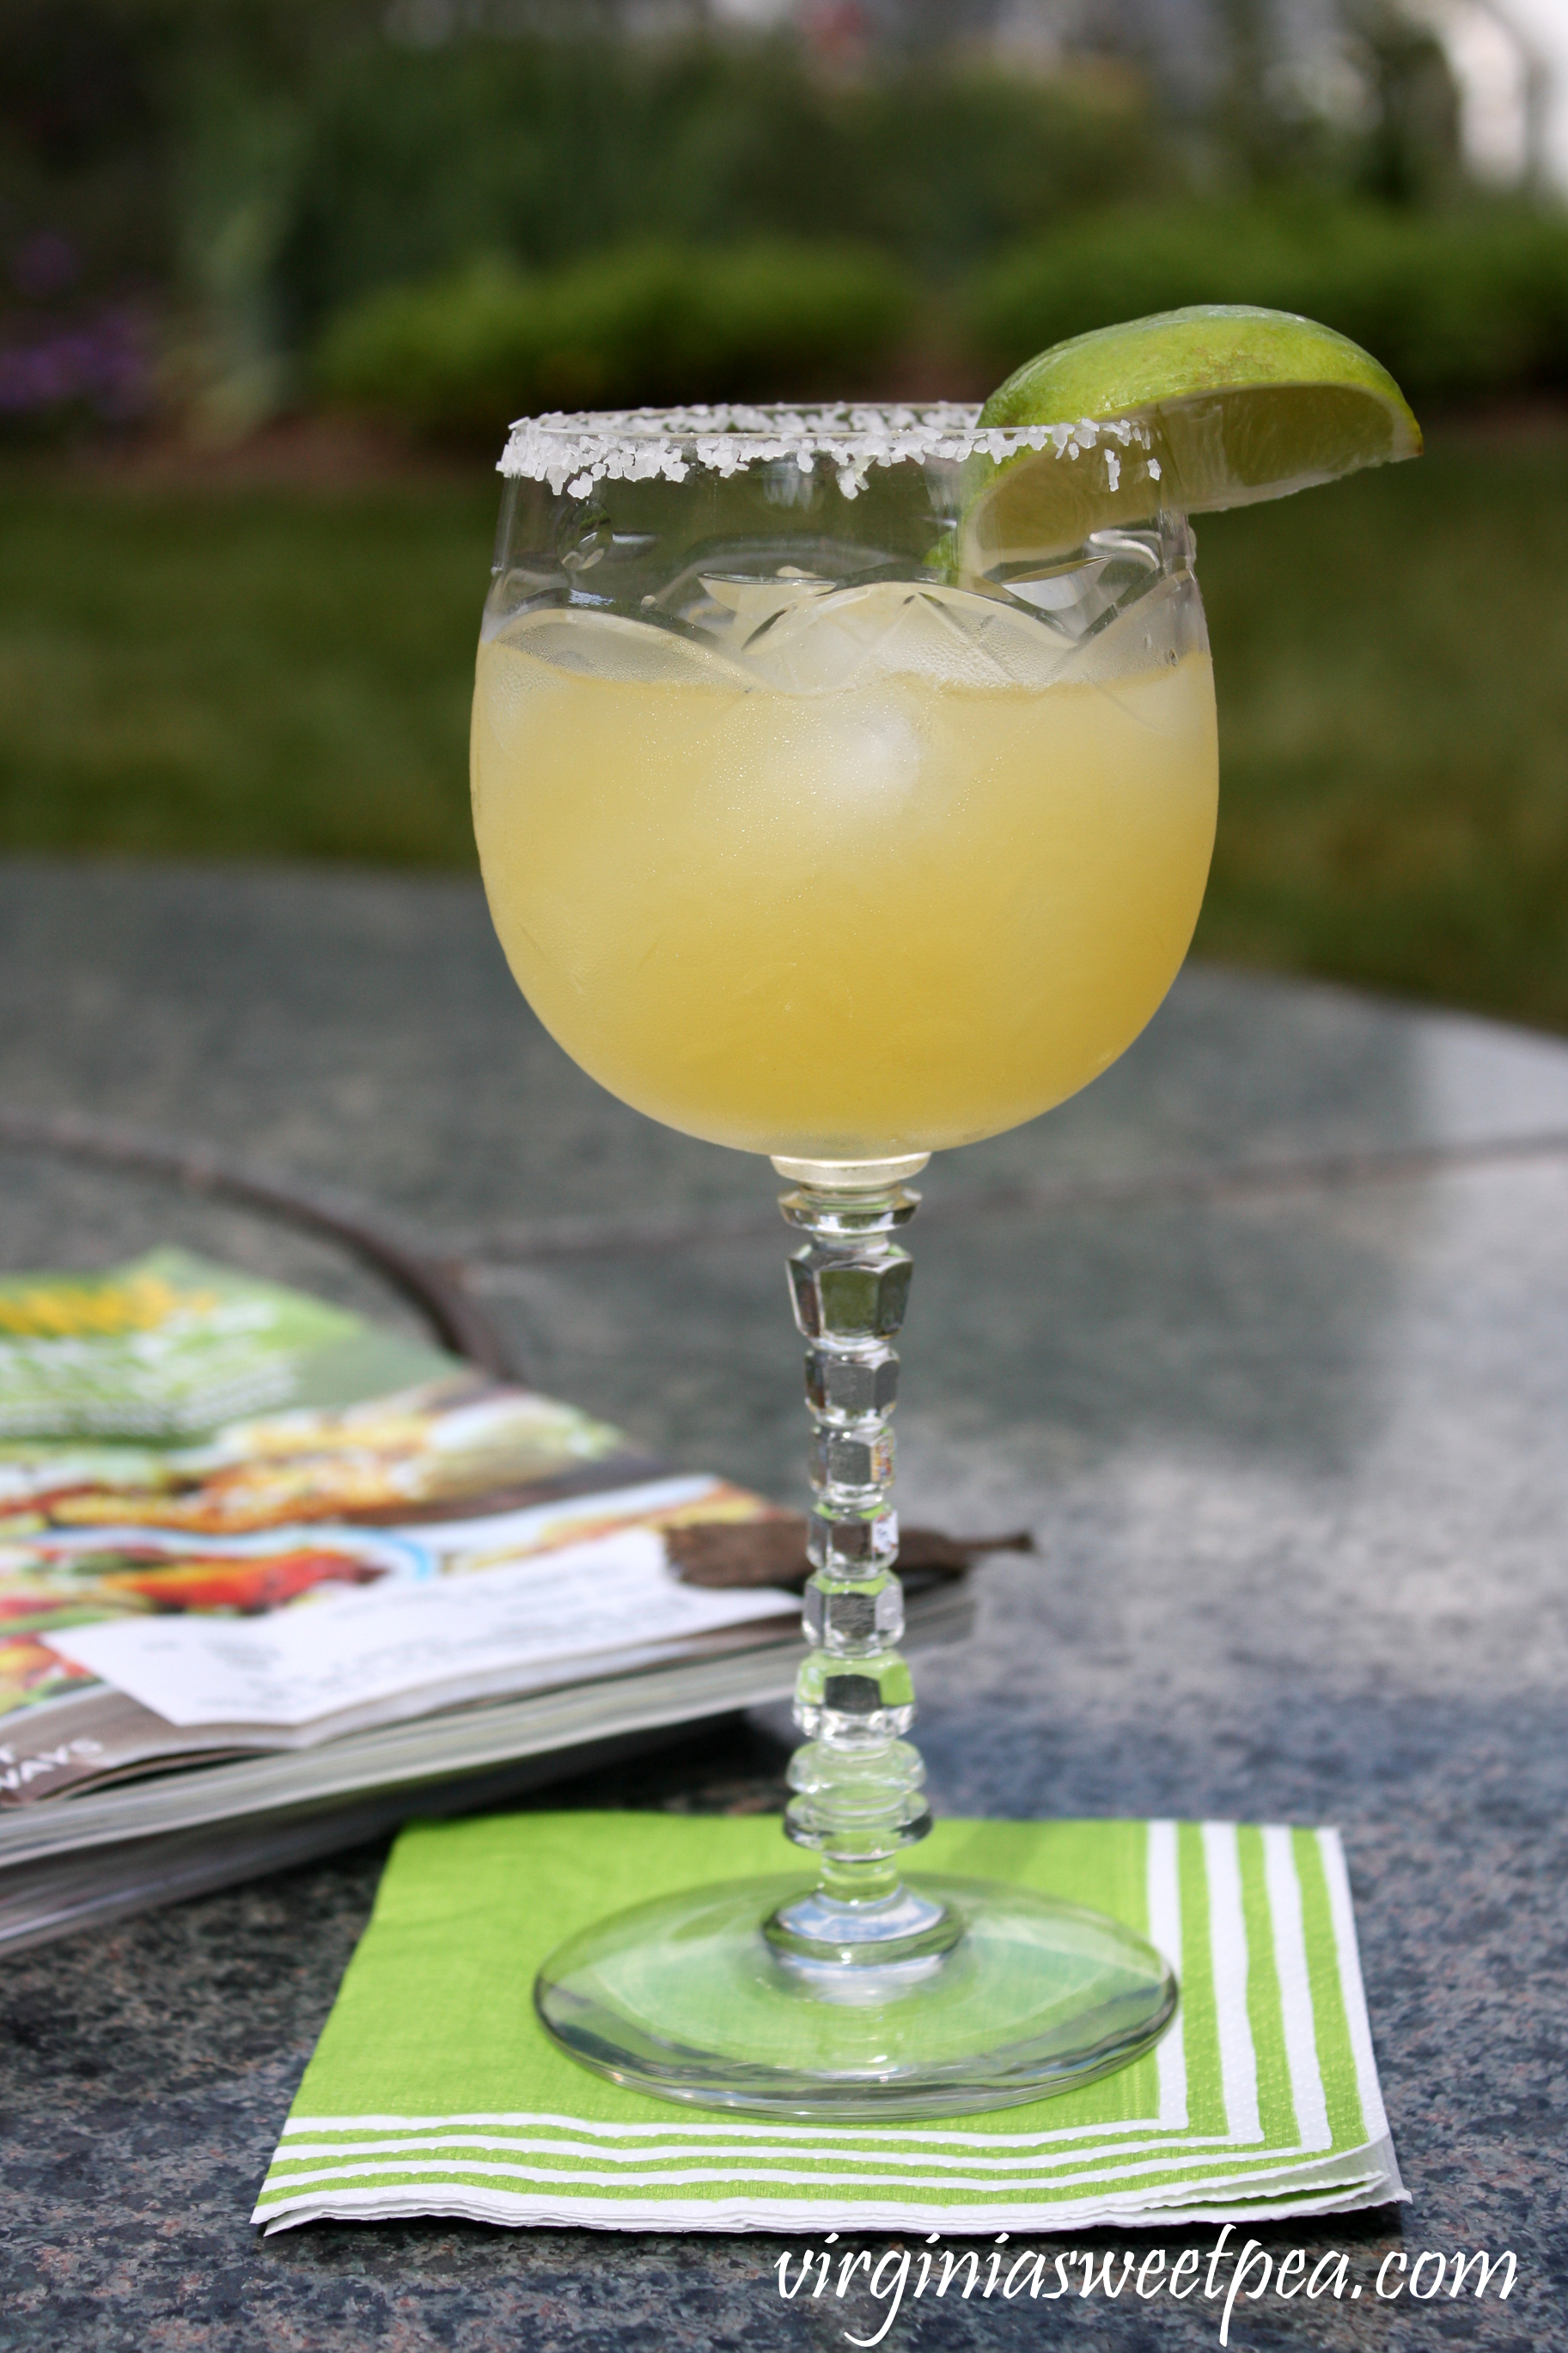 Low Calorie Margarita - Get all of the flavor of a traditional Margarita without the calories. #margarita #bebadas #cincodemayo #margaritas #tequila #happycincodemayo